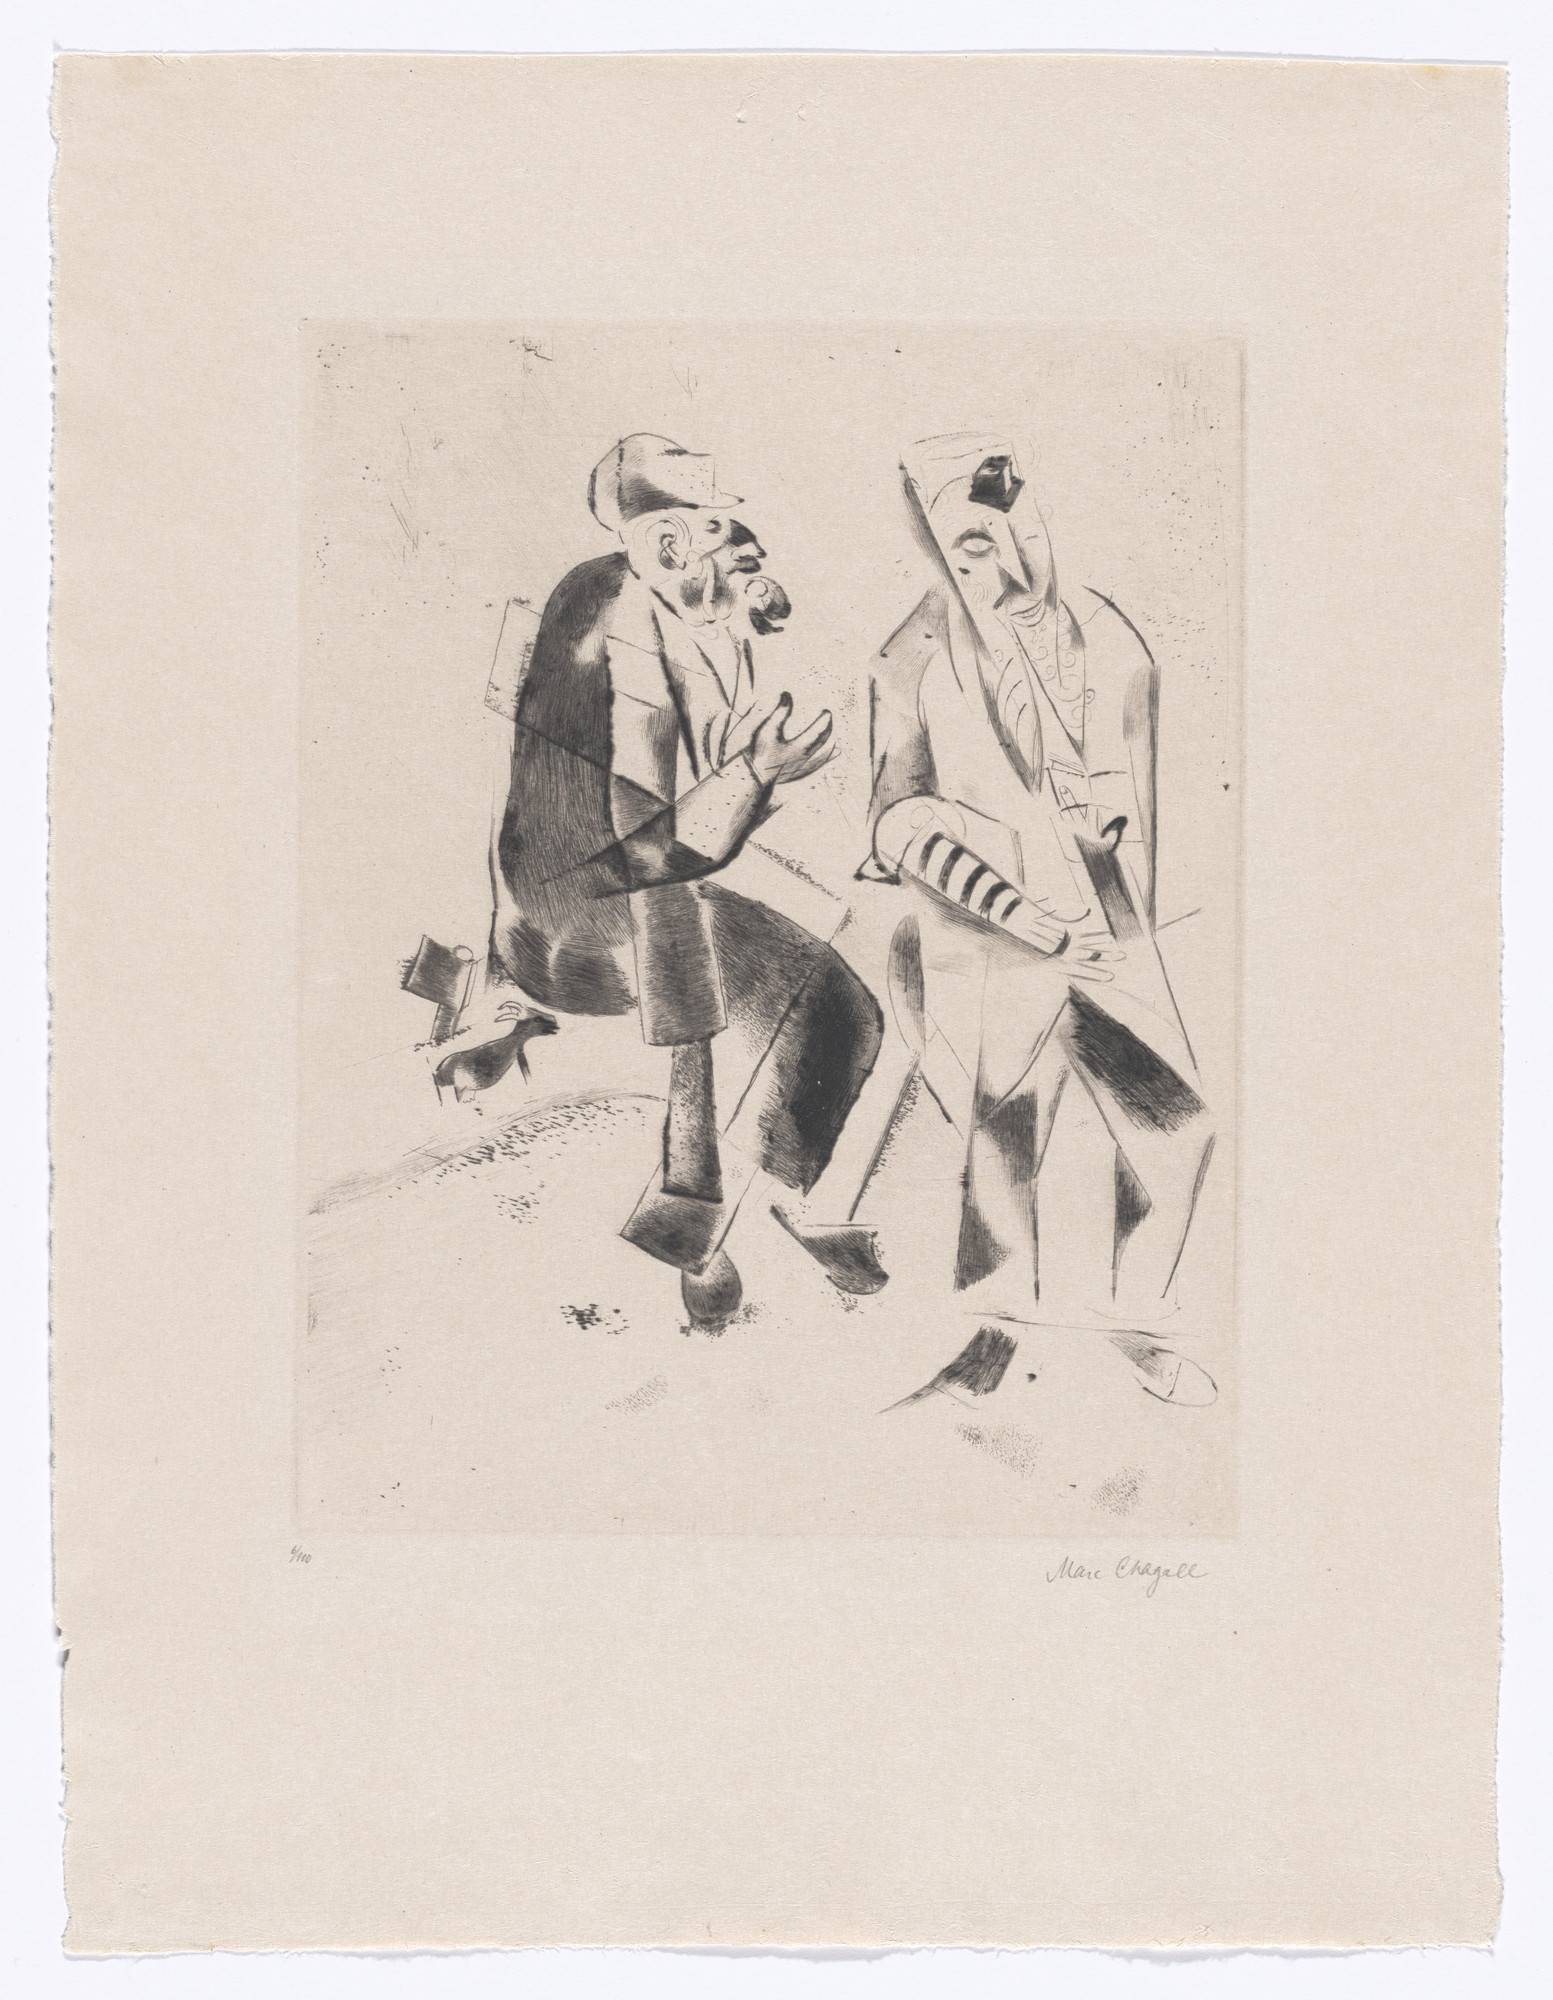 Marc Chagall. The Grandfathers (Die Grossväter) from My Life (Mein Leben). 1922, published 1923